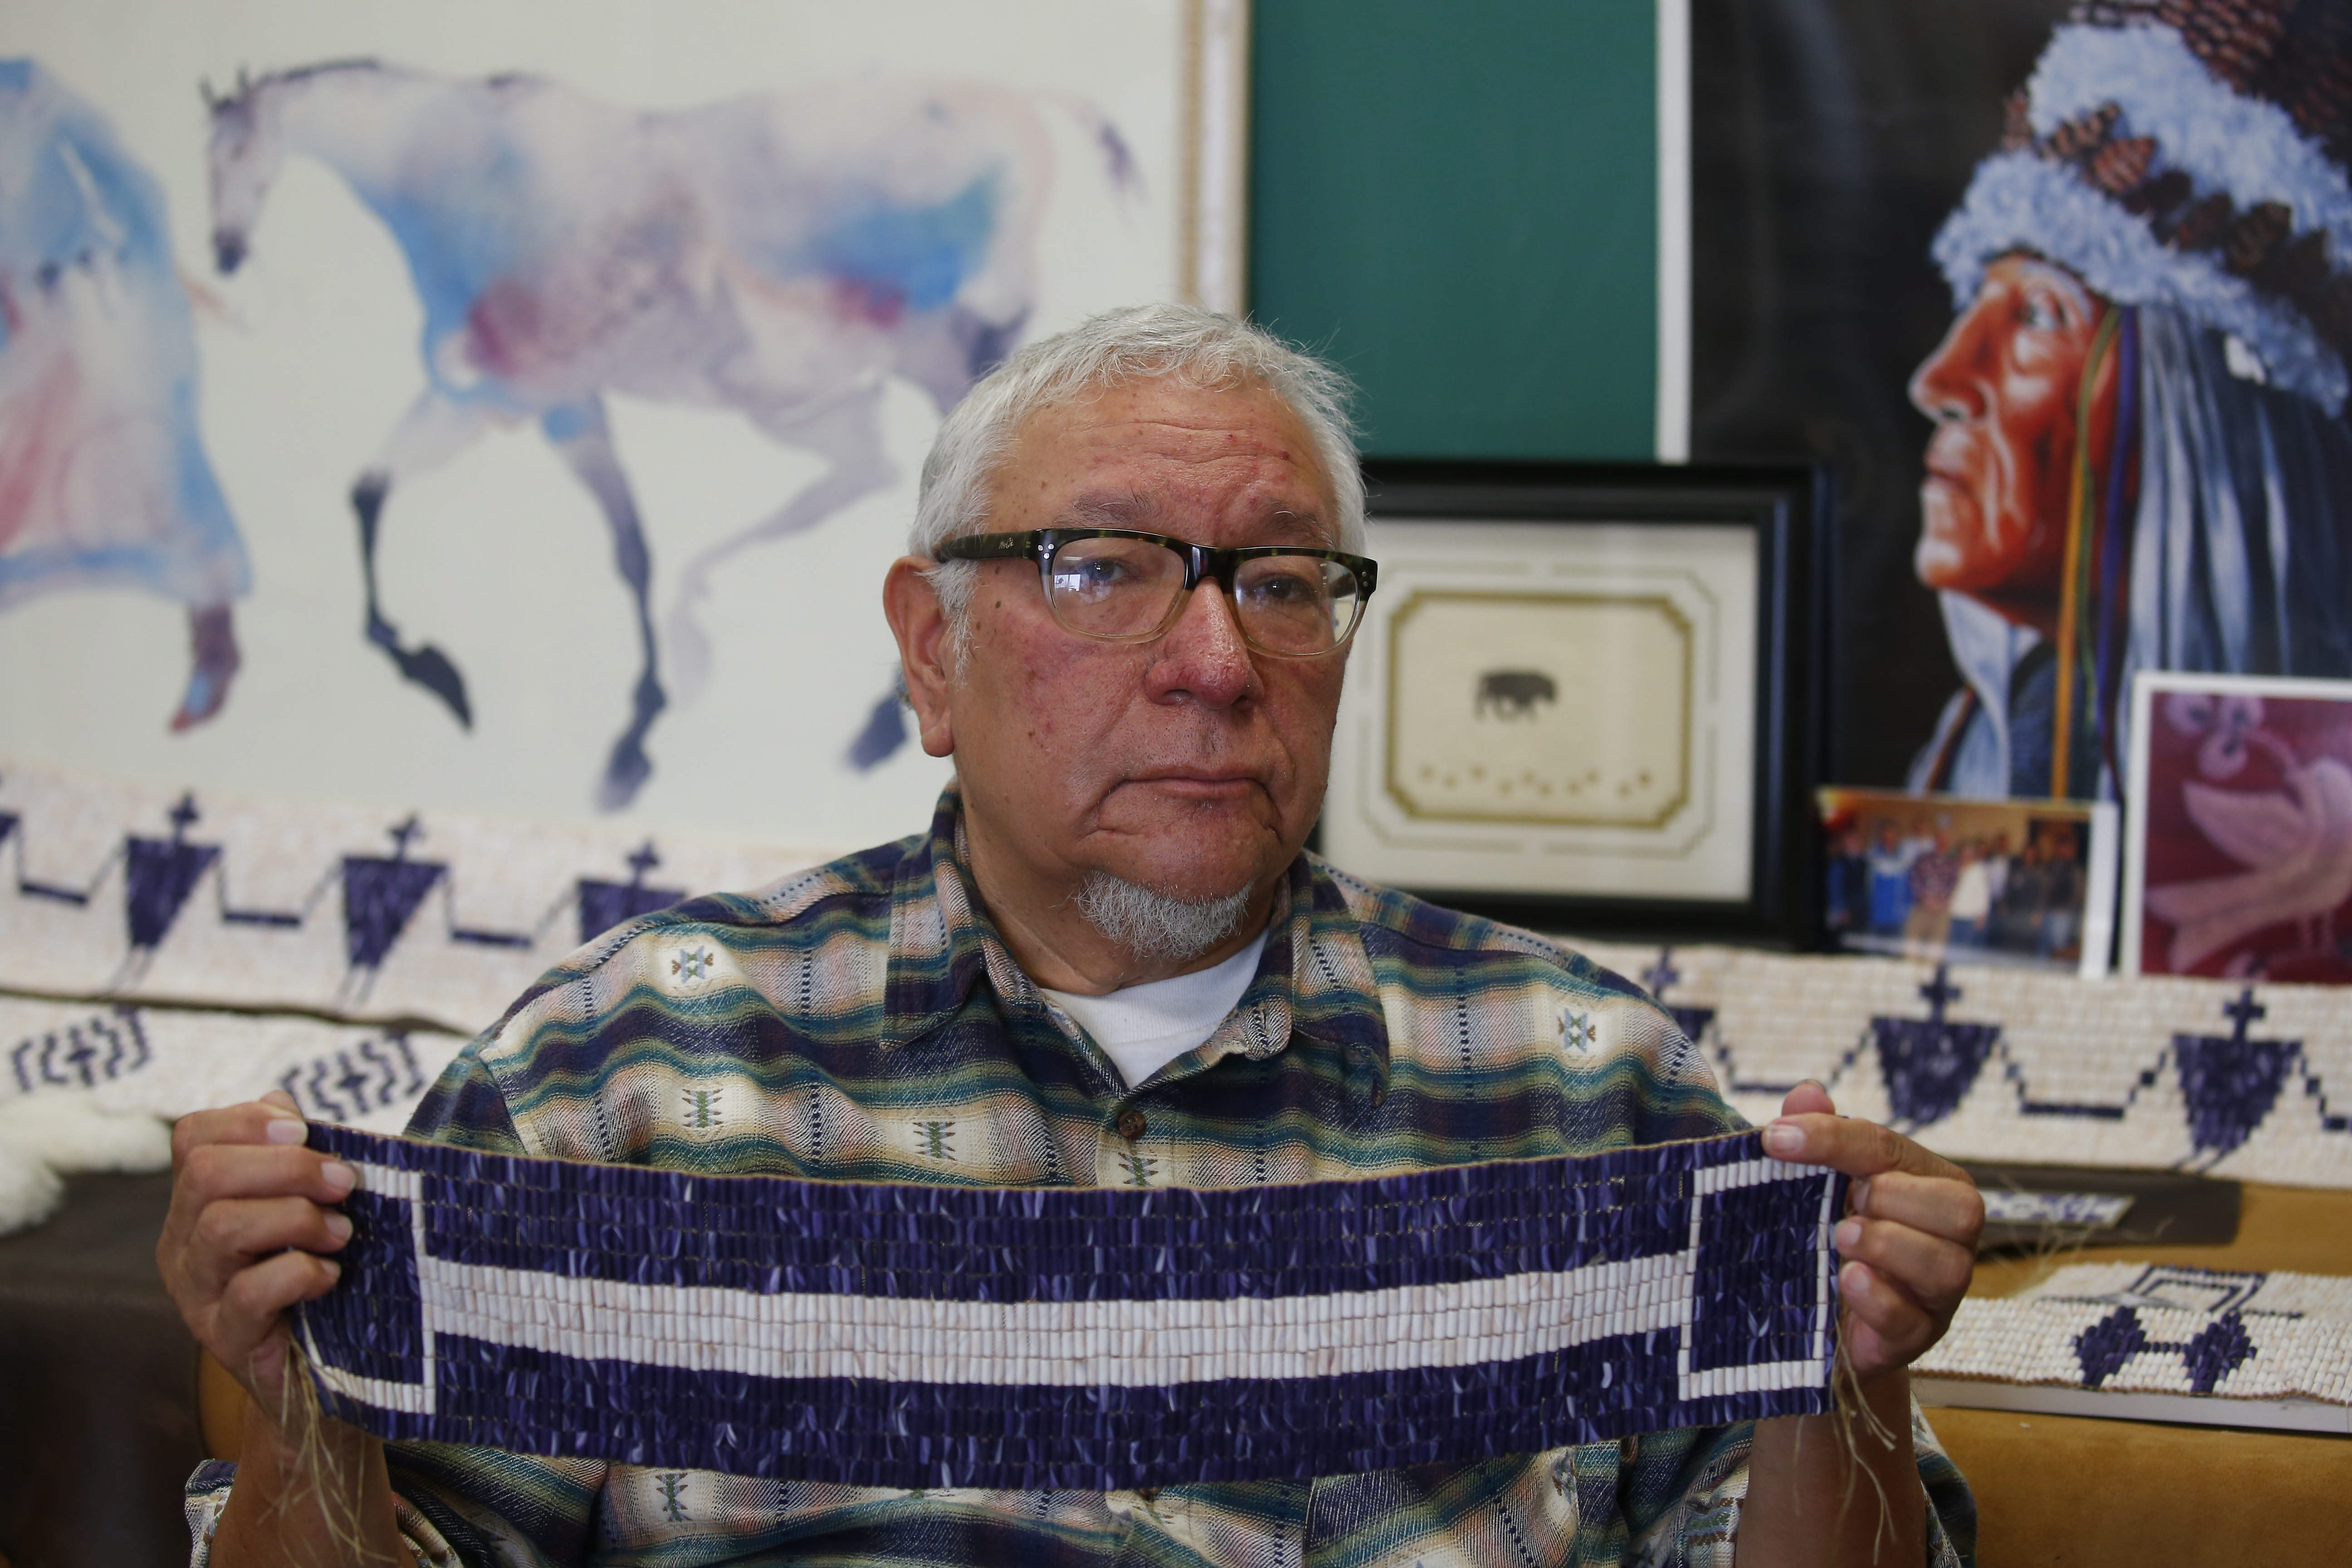 Allan Jamieson holds a replica wampum belt at the Niagara Arts and Cultural Center in Niagara Falls. Only 40 to 50 of the original Six Nations belts survive, and they have gradually been returned to their original owners.